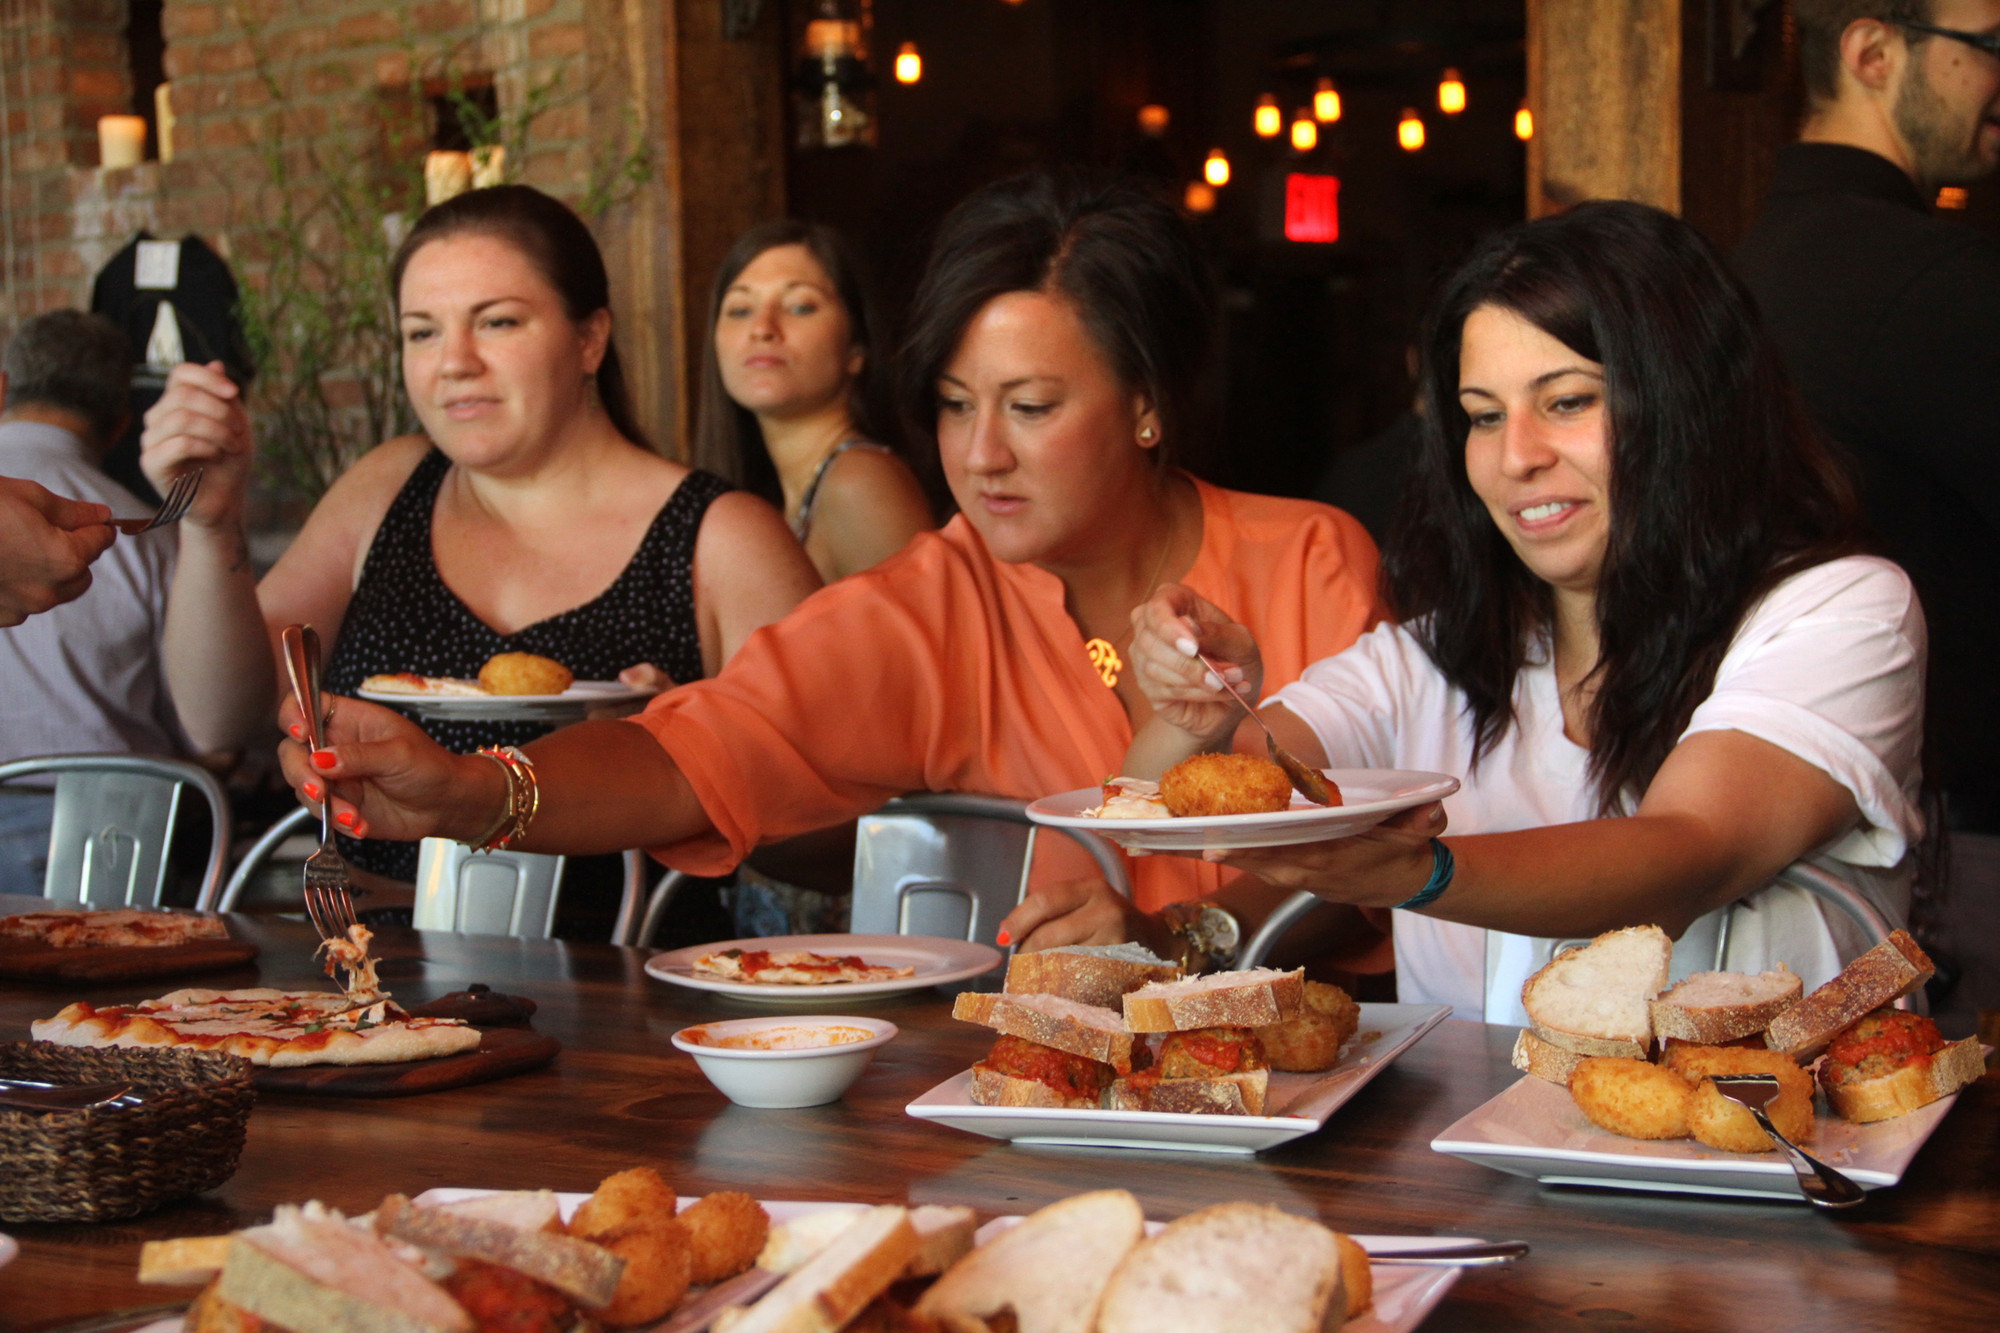 Kristen Melega, Christine Comer and Taline Kharhatoorian help themselves to appetizers.